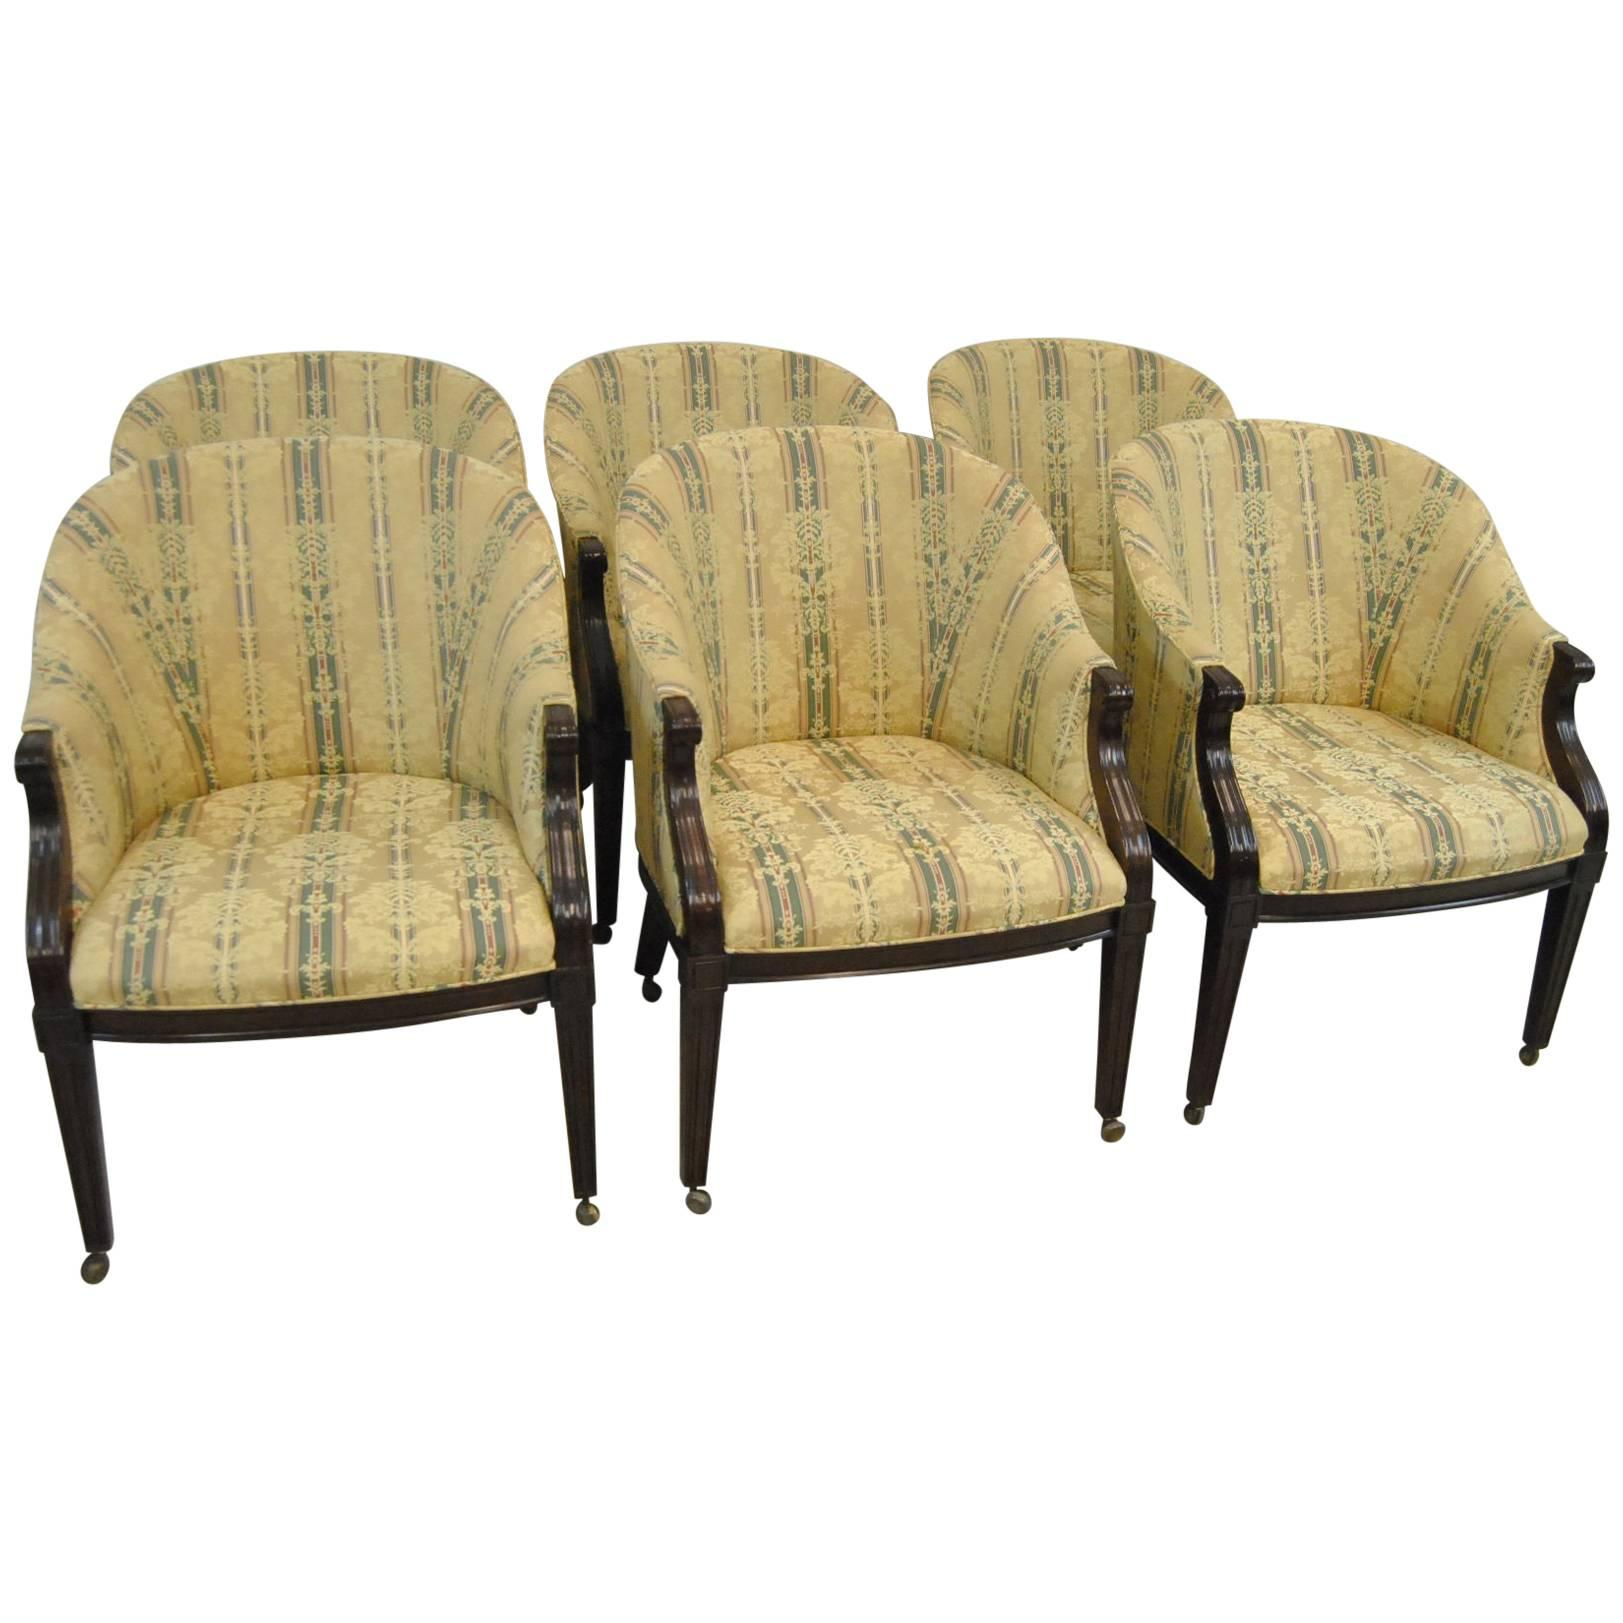 mid century modern cane barrel chairs ikea chair covers ebay vintage baker faux bamboo back in - 4 available at 1stdibs